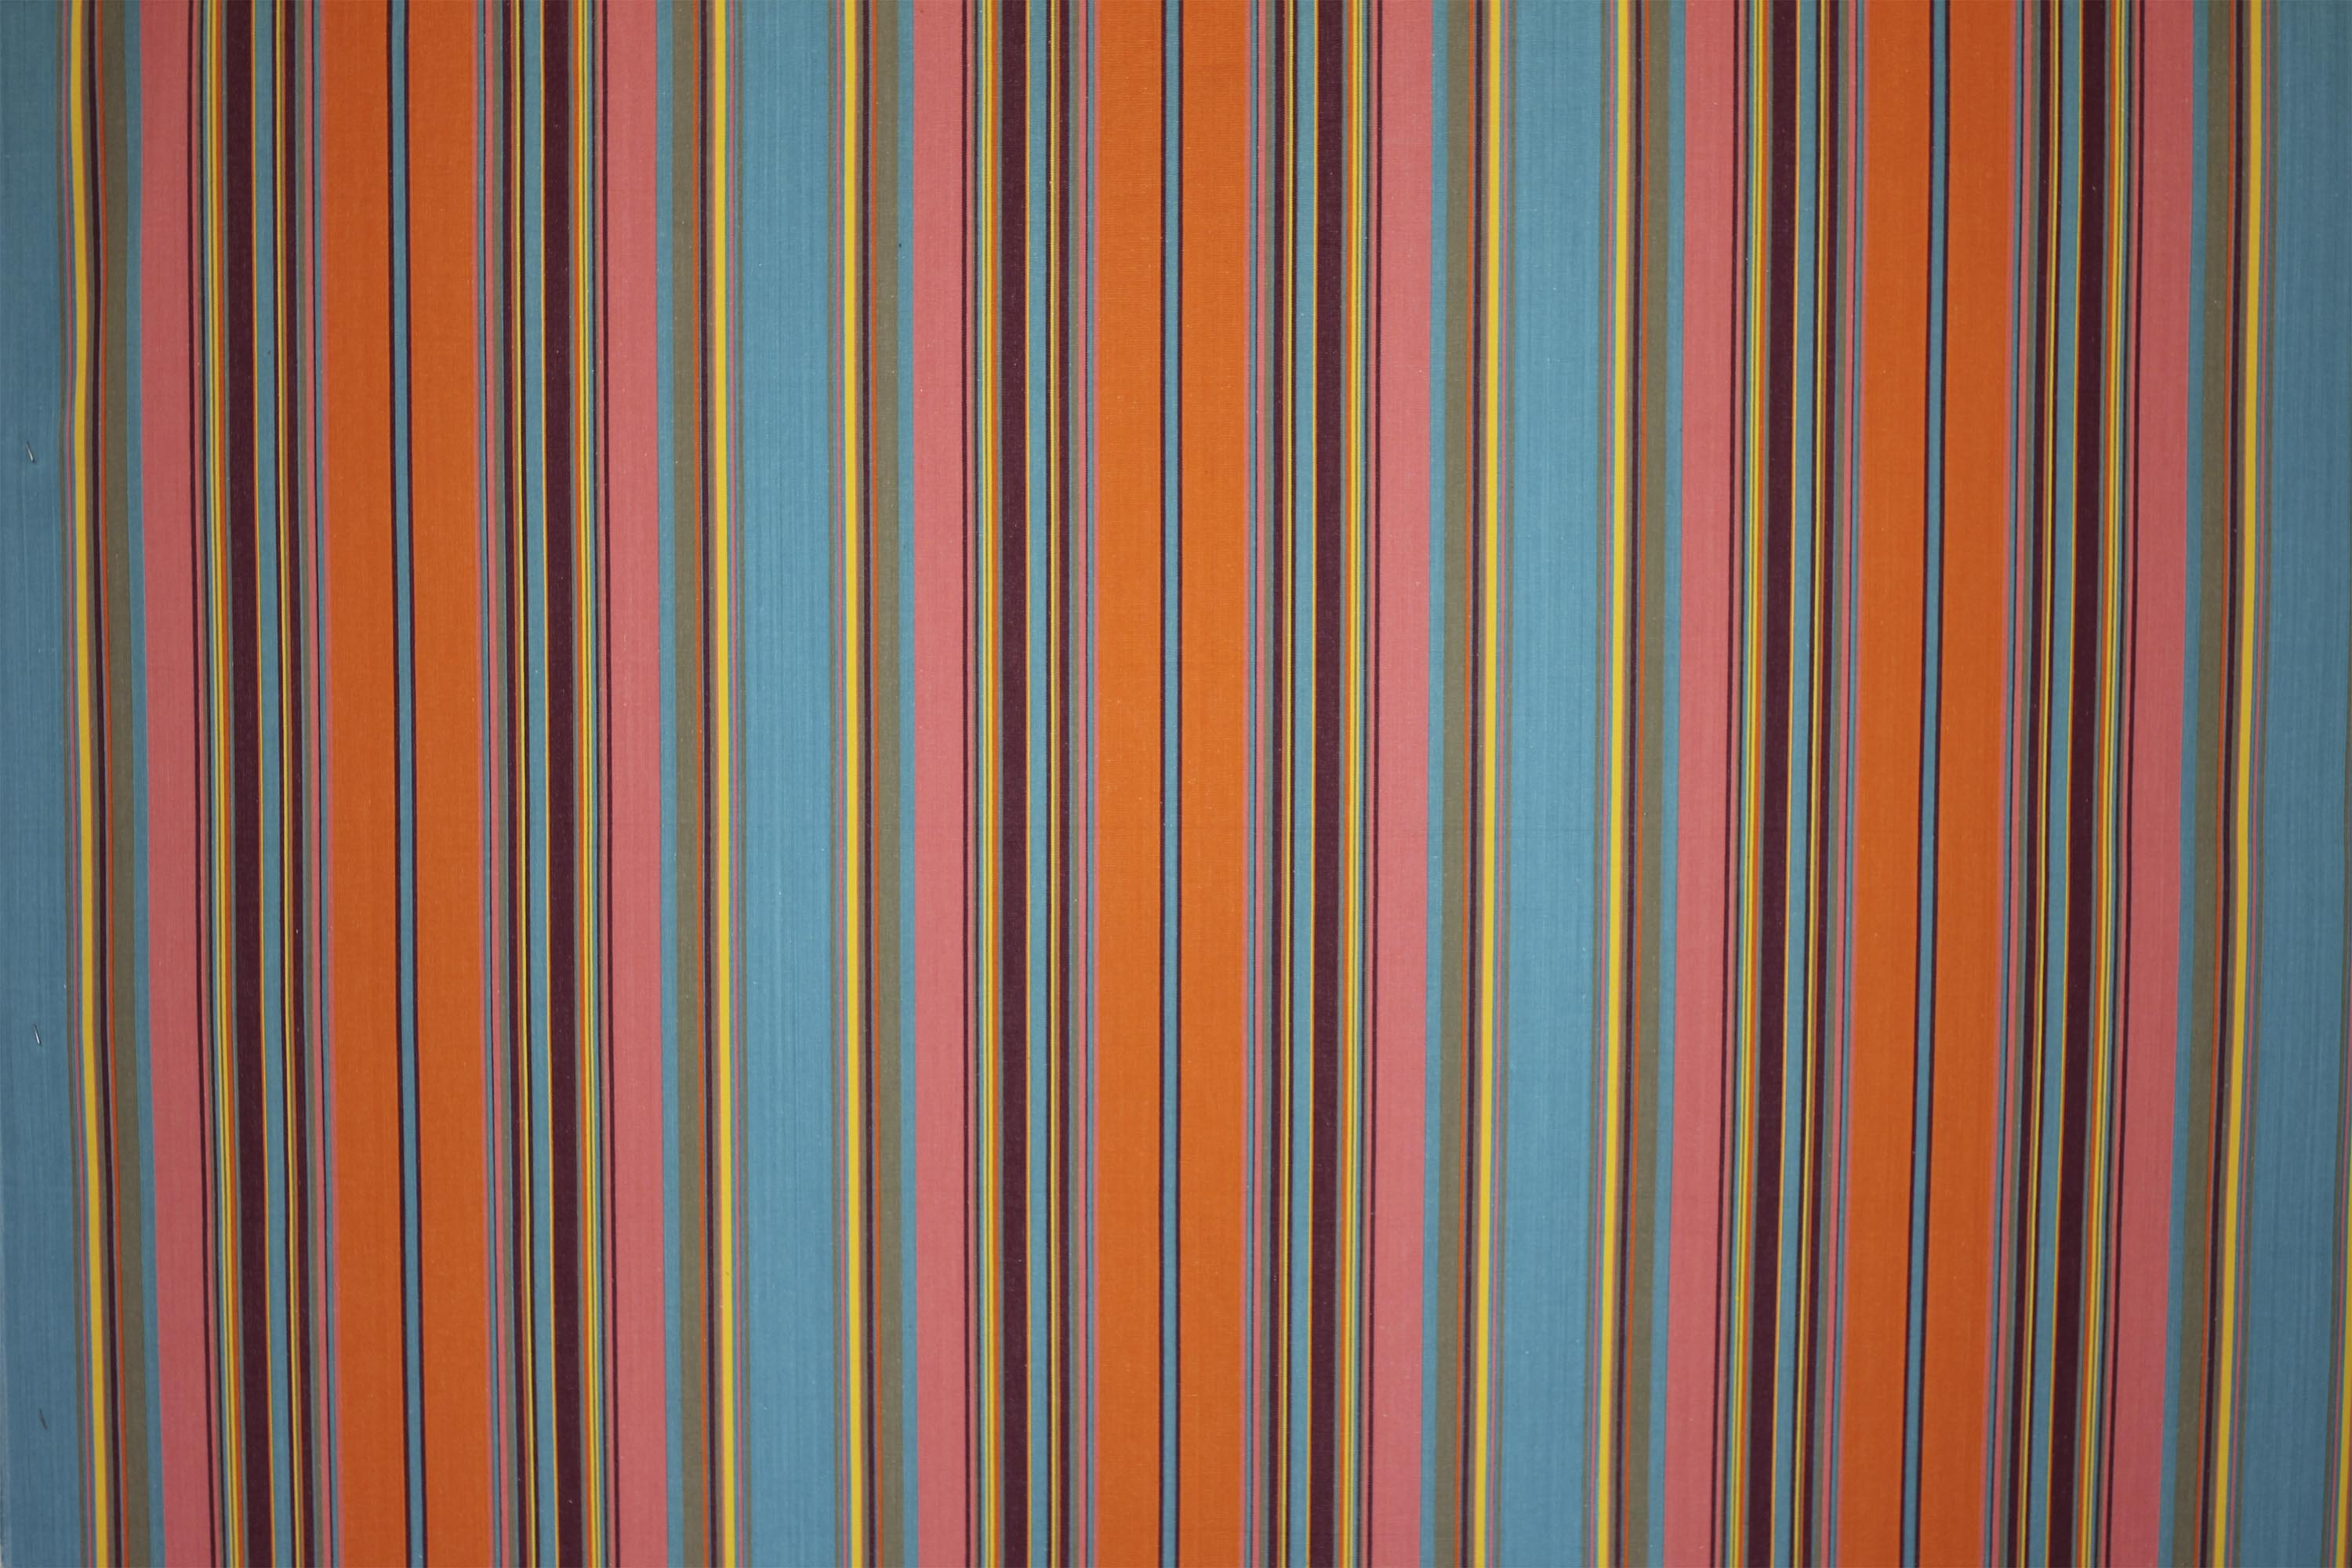 Striped Beach Windbreak - turquoise, salmon pink, tangerine stripes